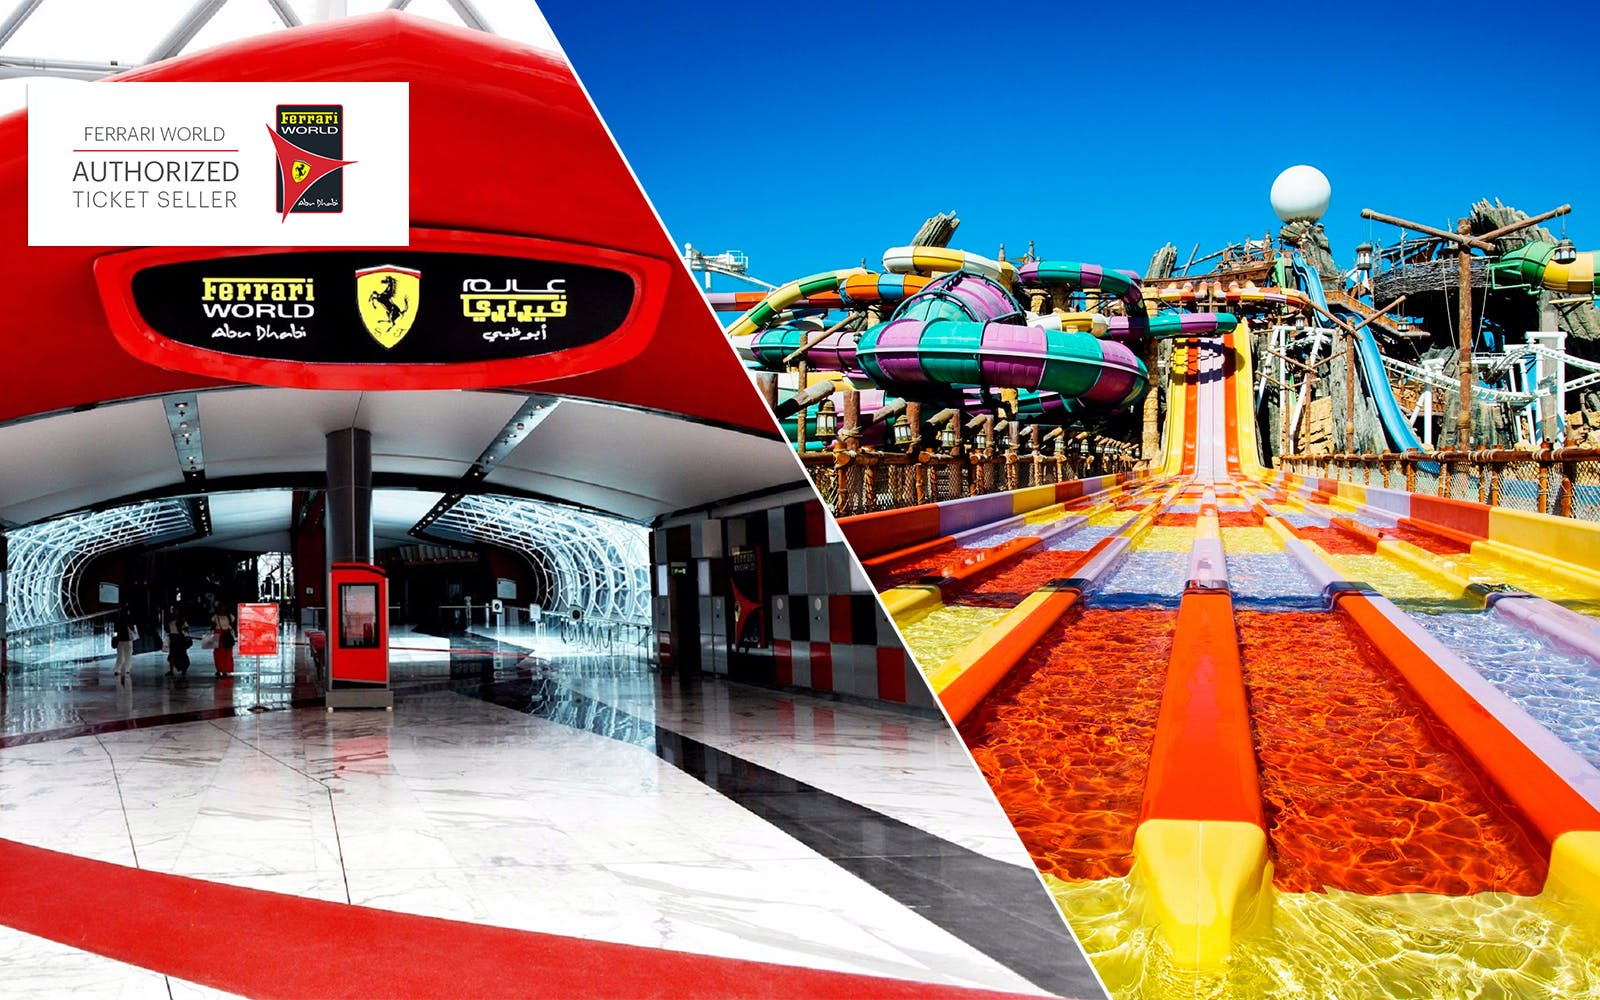 Ferrari World and Yas Waterworld